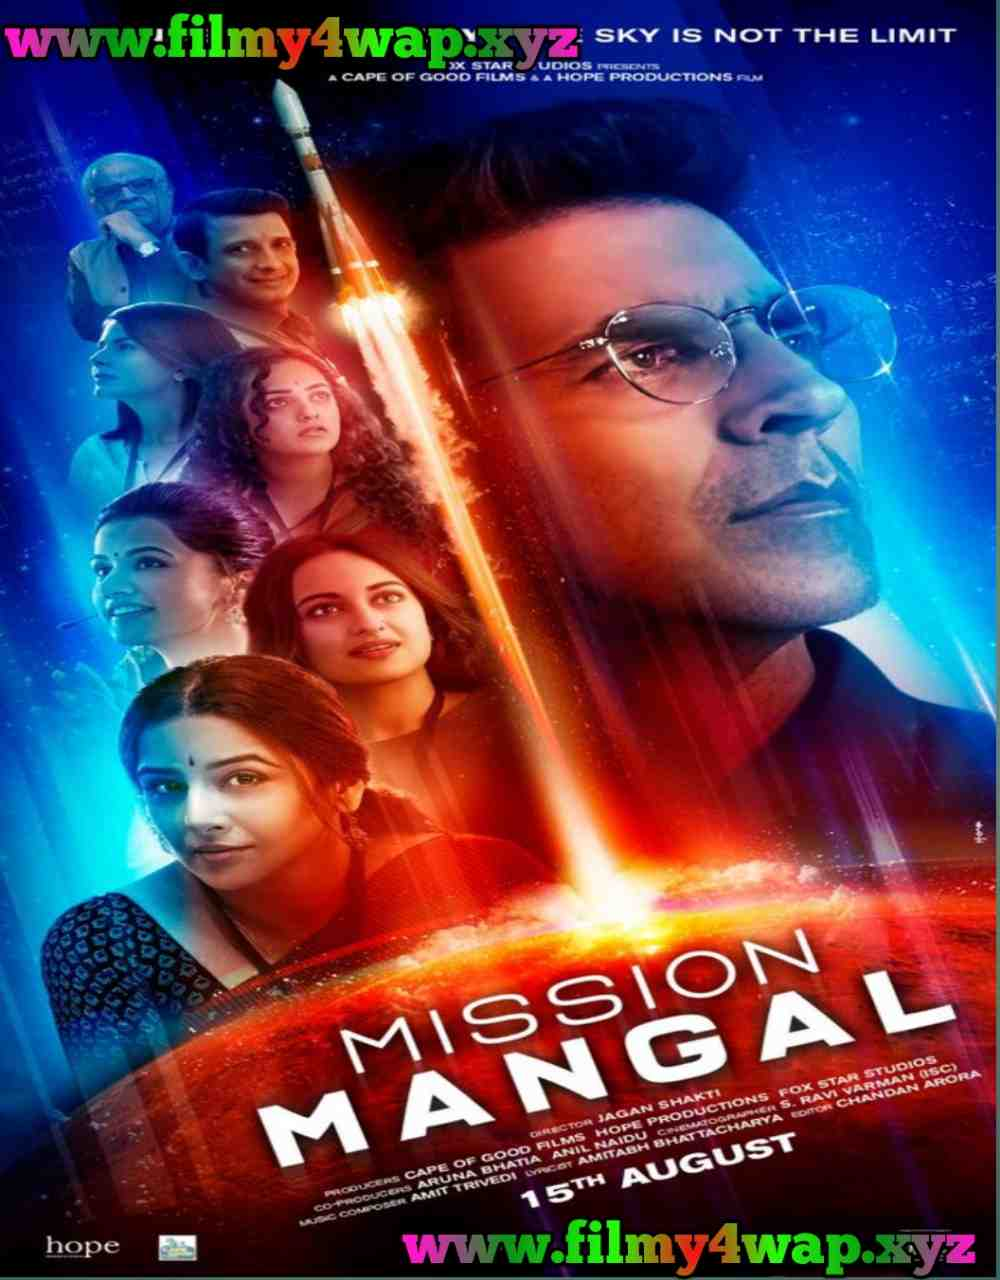 Mission Mangal (2019) Bollywood Full Movie 400MB 900MB